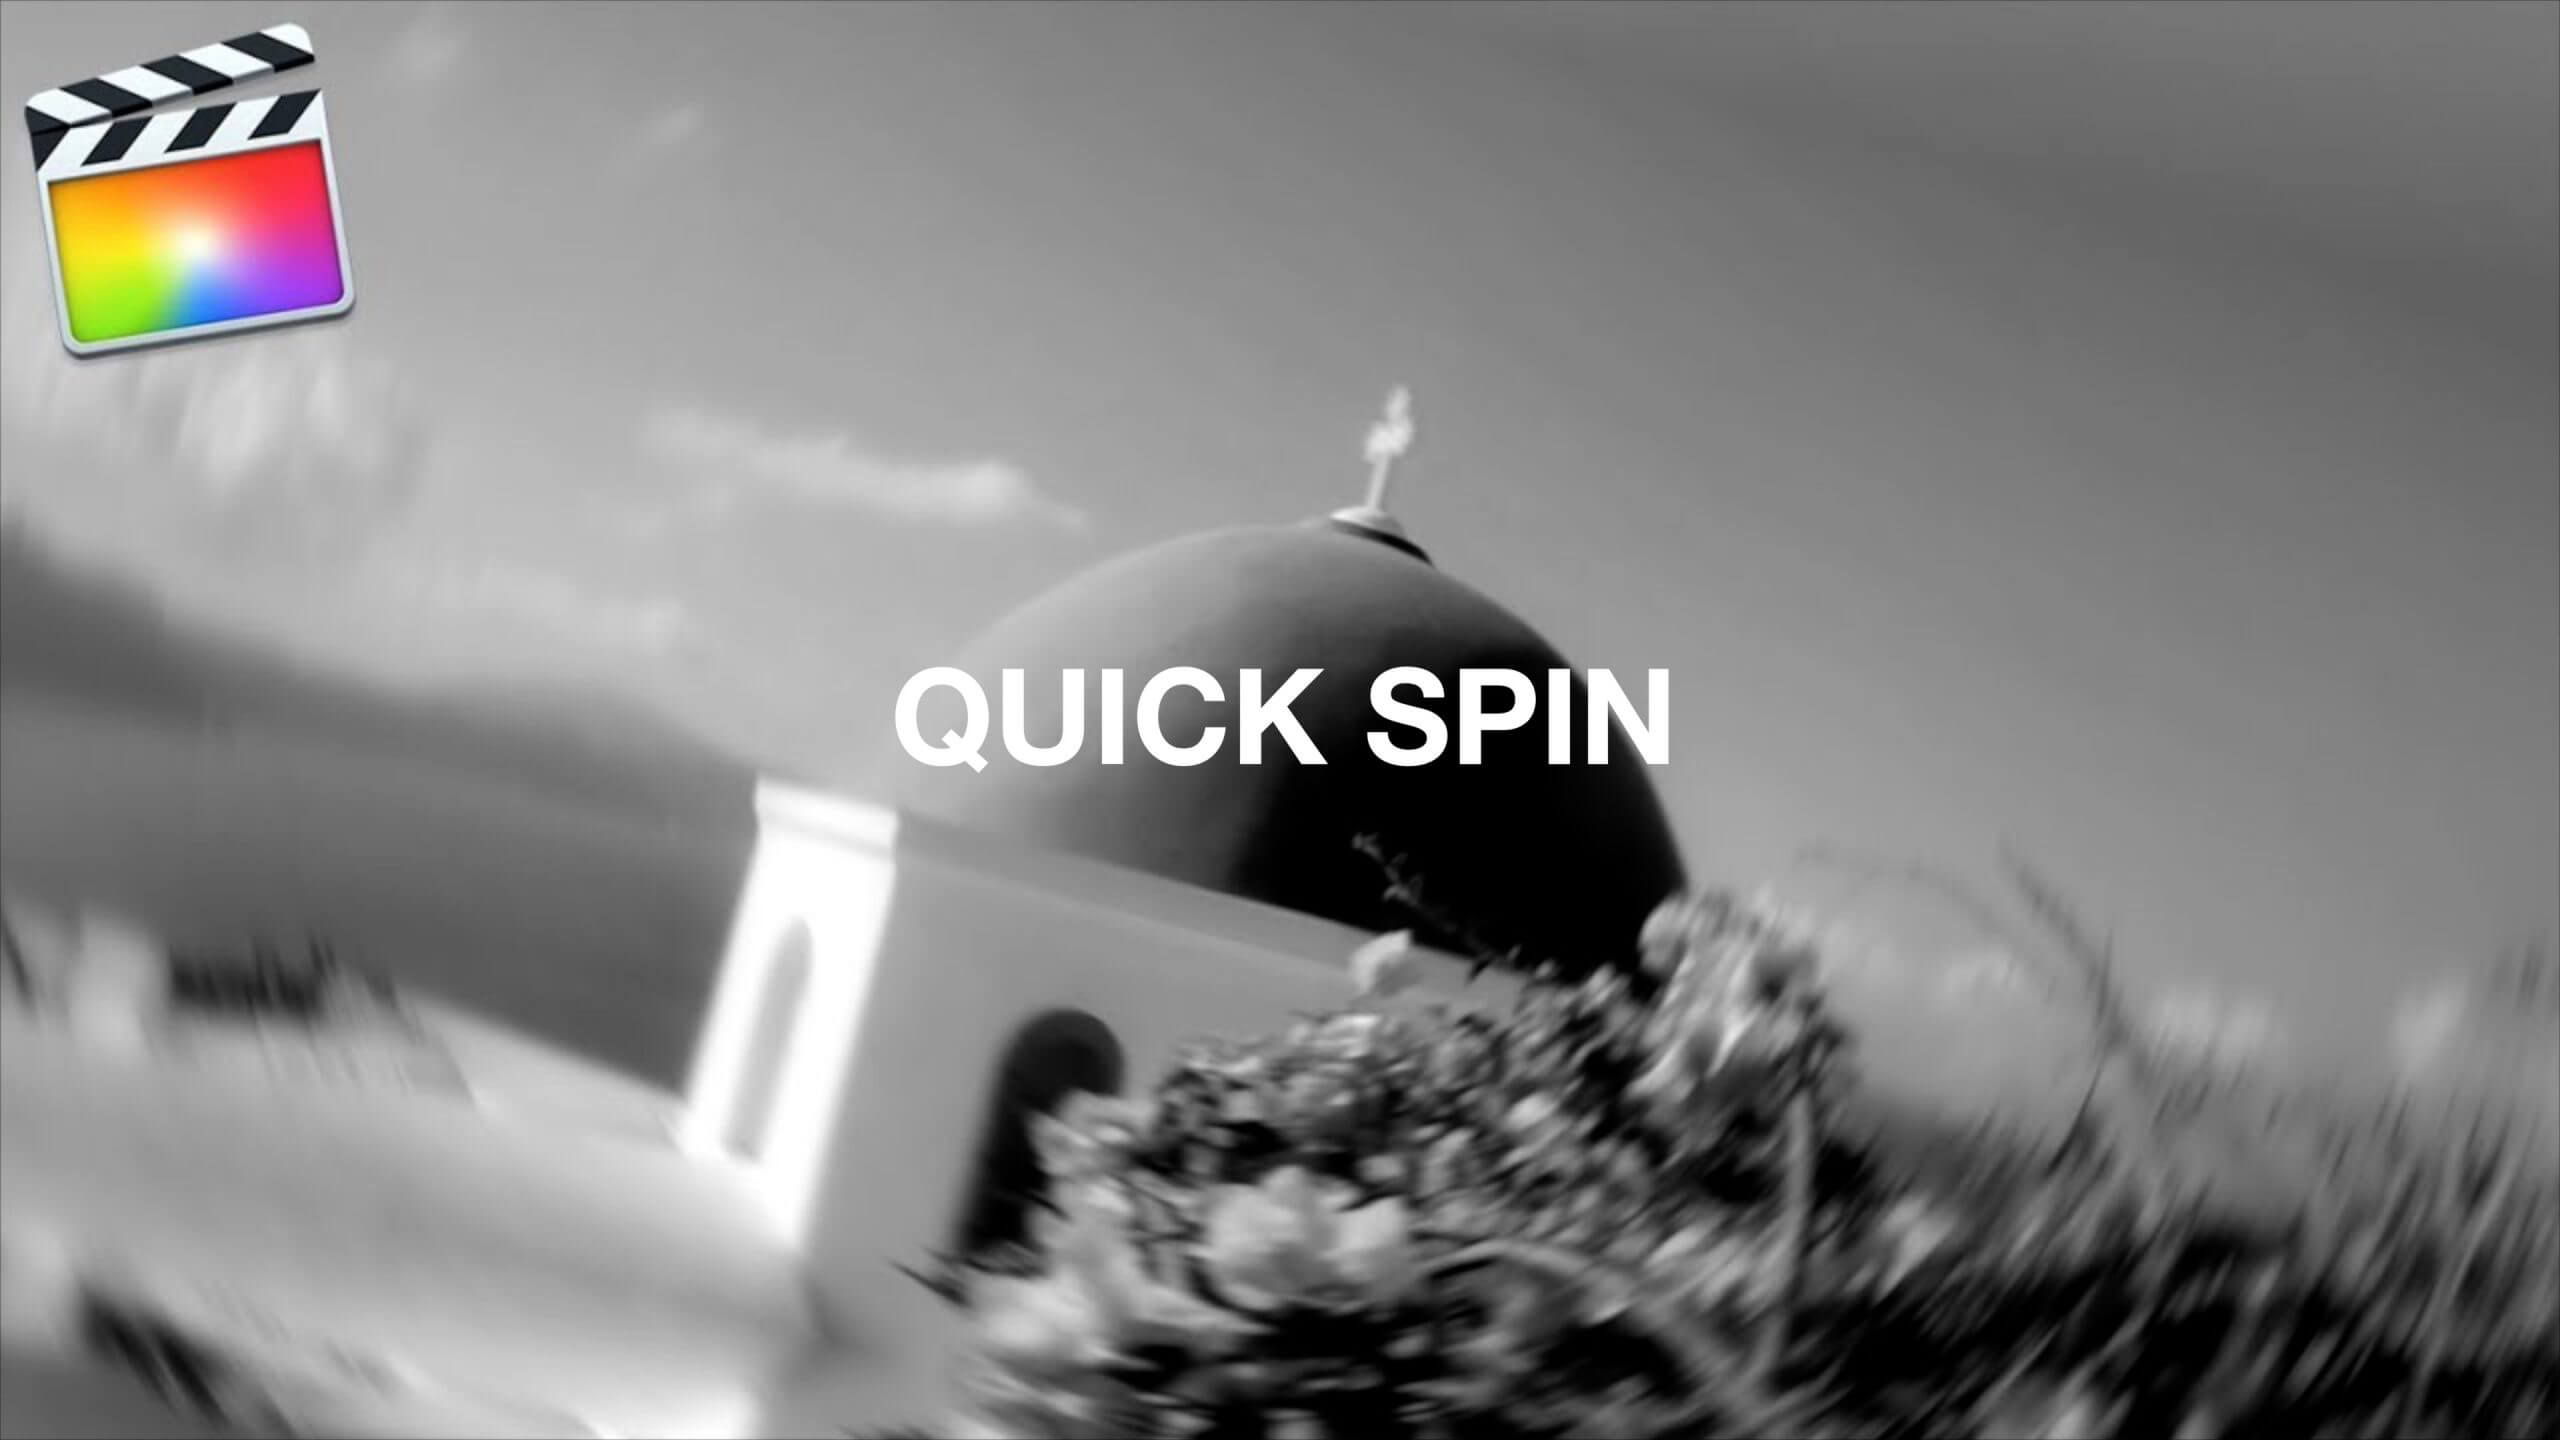 Final Cut Pro X クイックスピントランジション「Quick Spin Transition」の方法